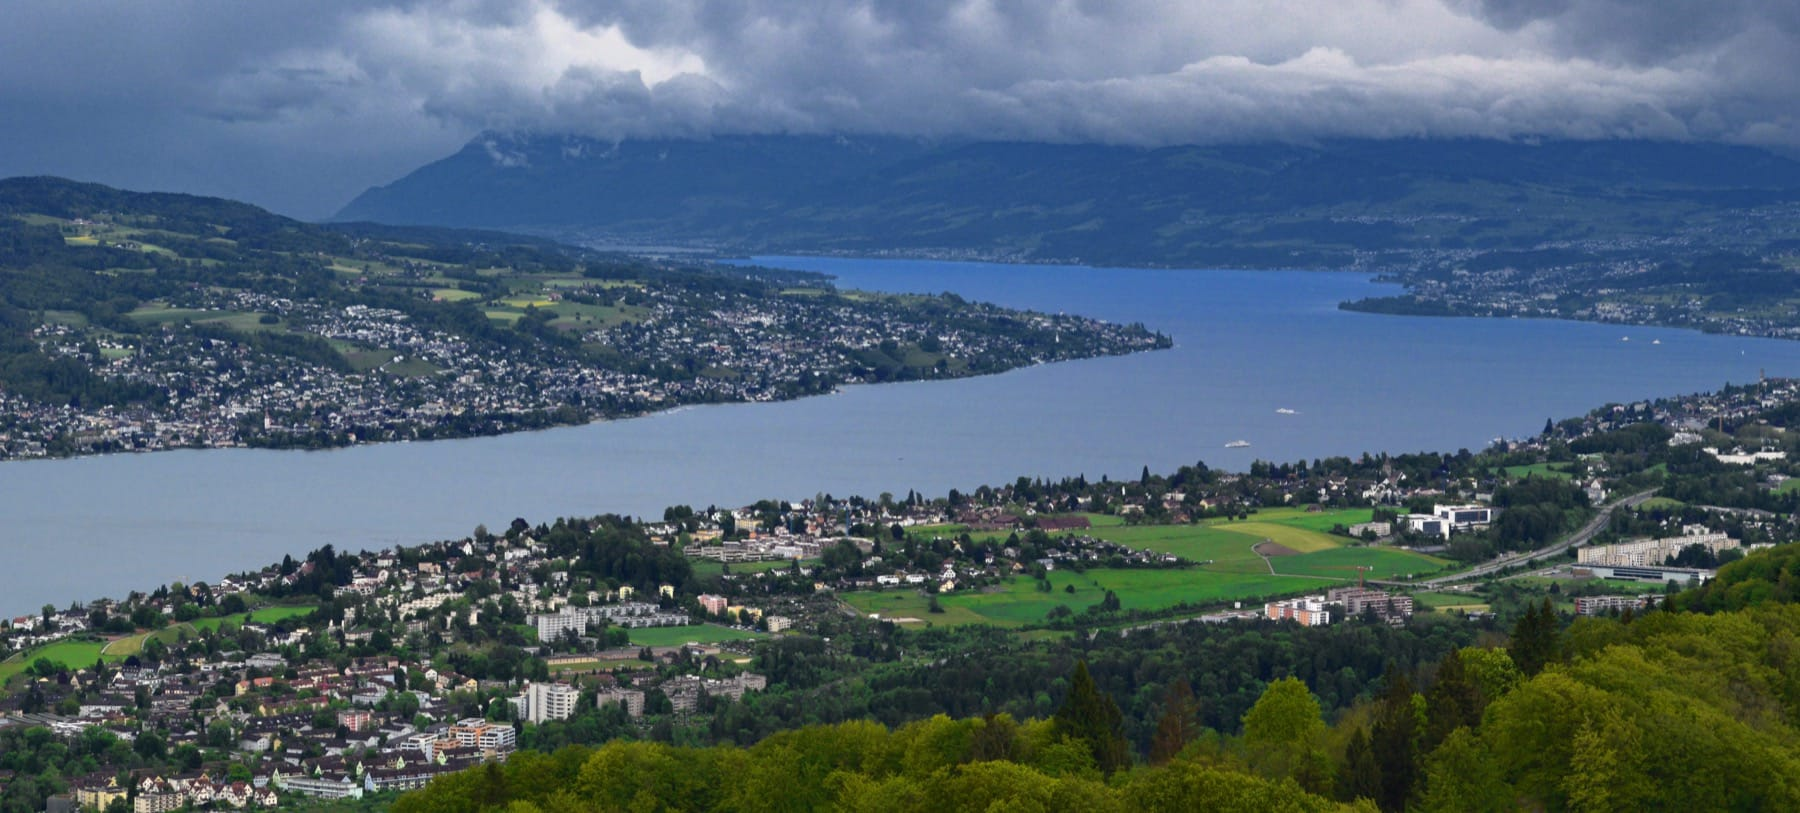 Zürichsee as seen from the top of the Üetliberg